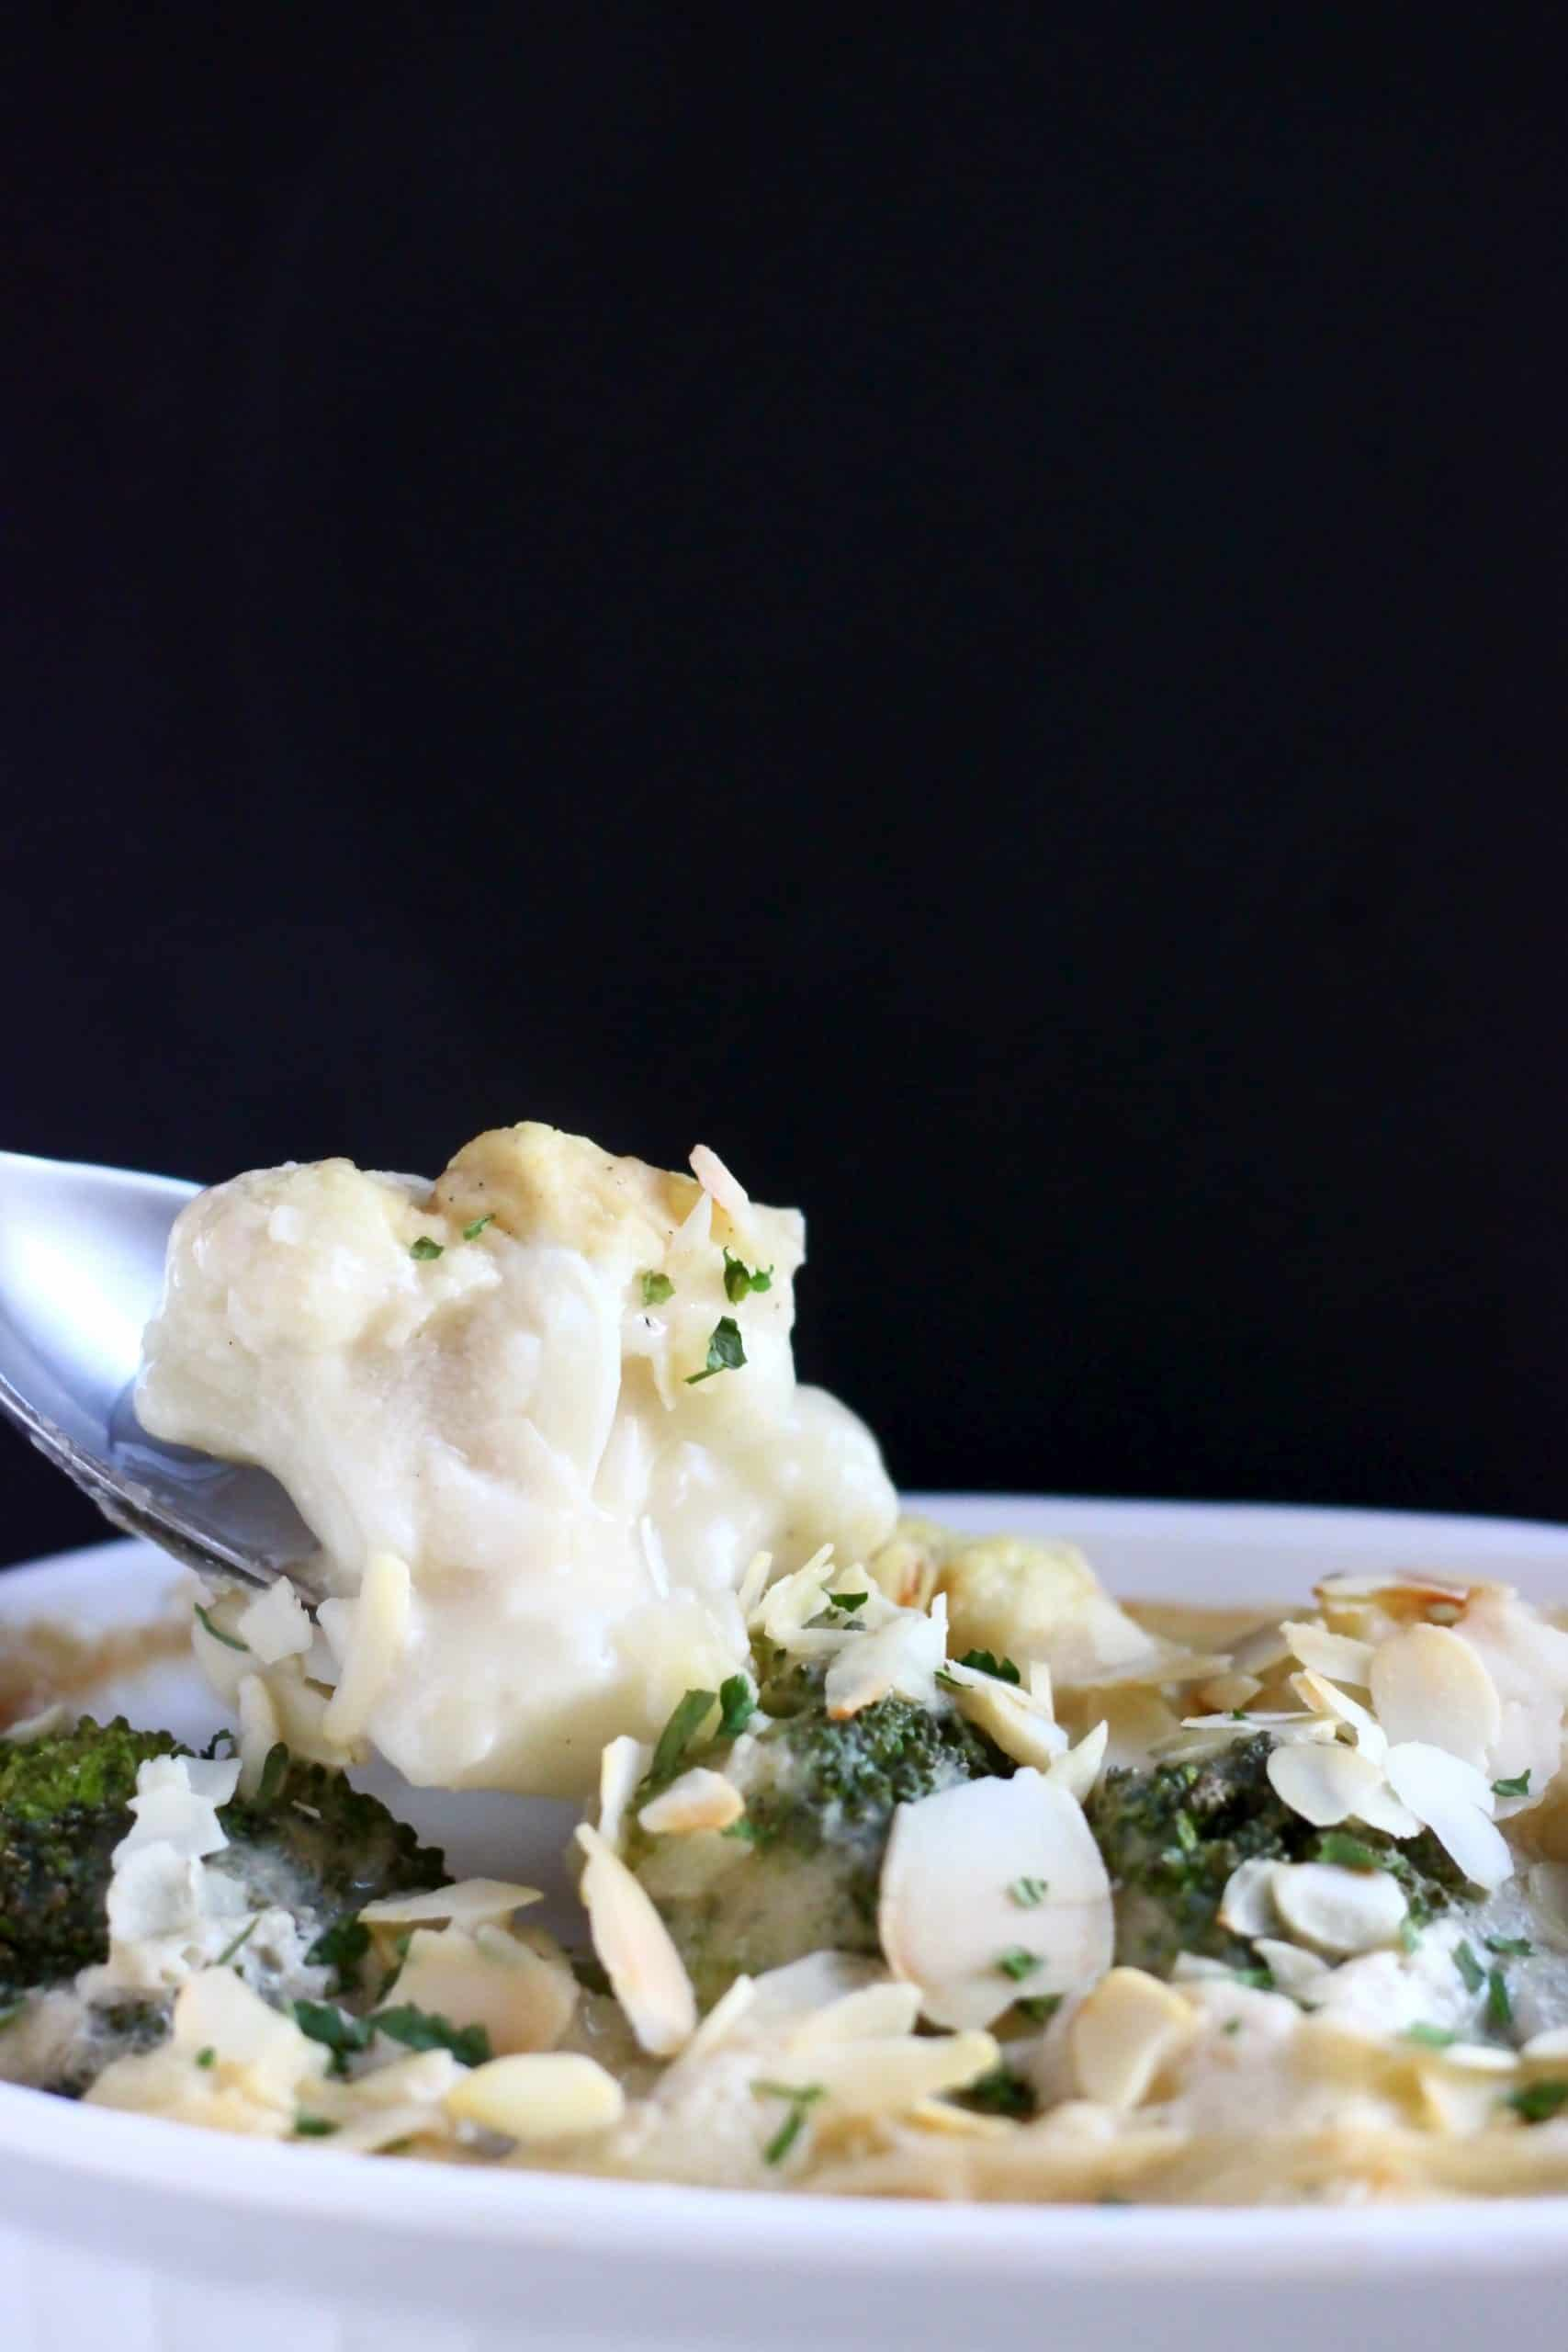 A spoon lifting up a mouthful of cauliflower cheese gratin